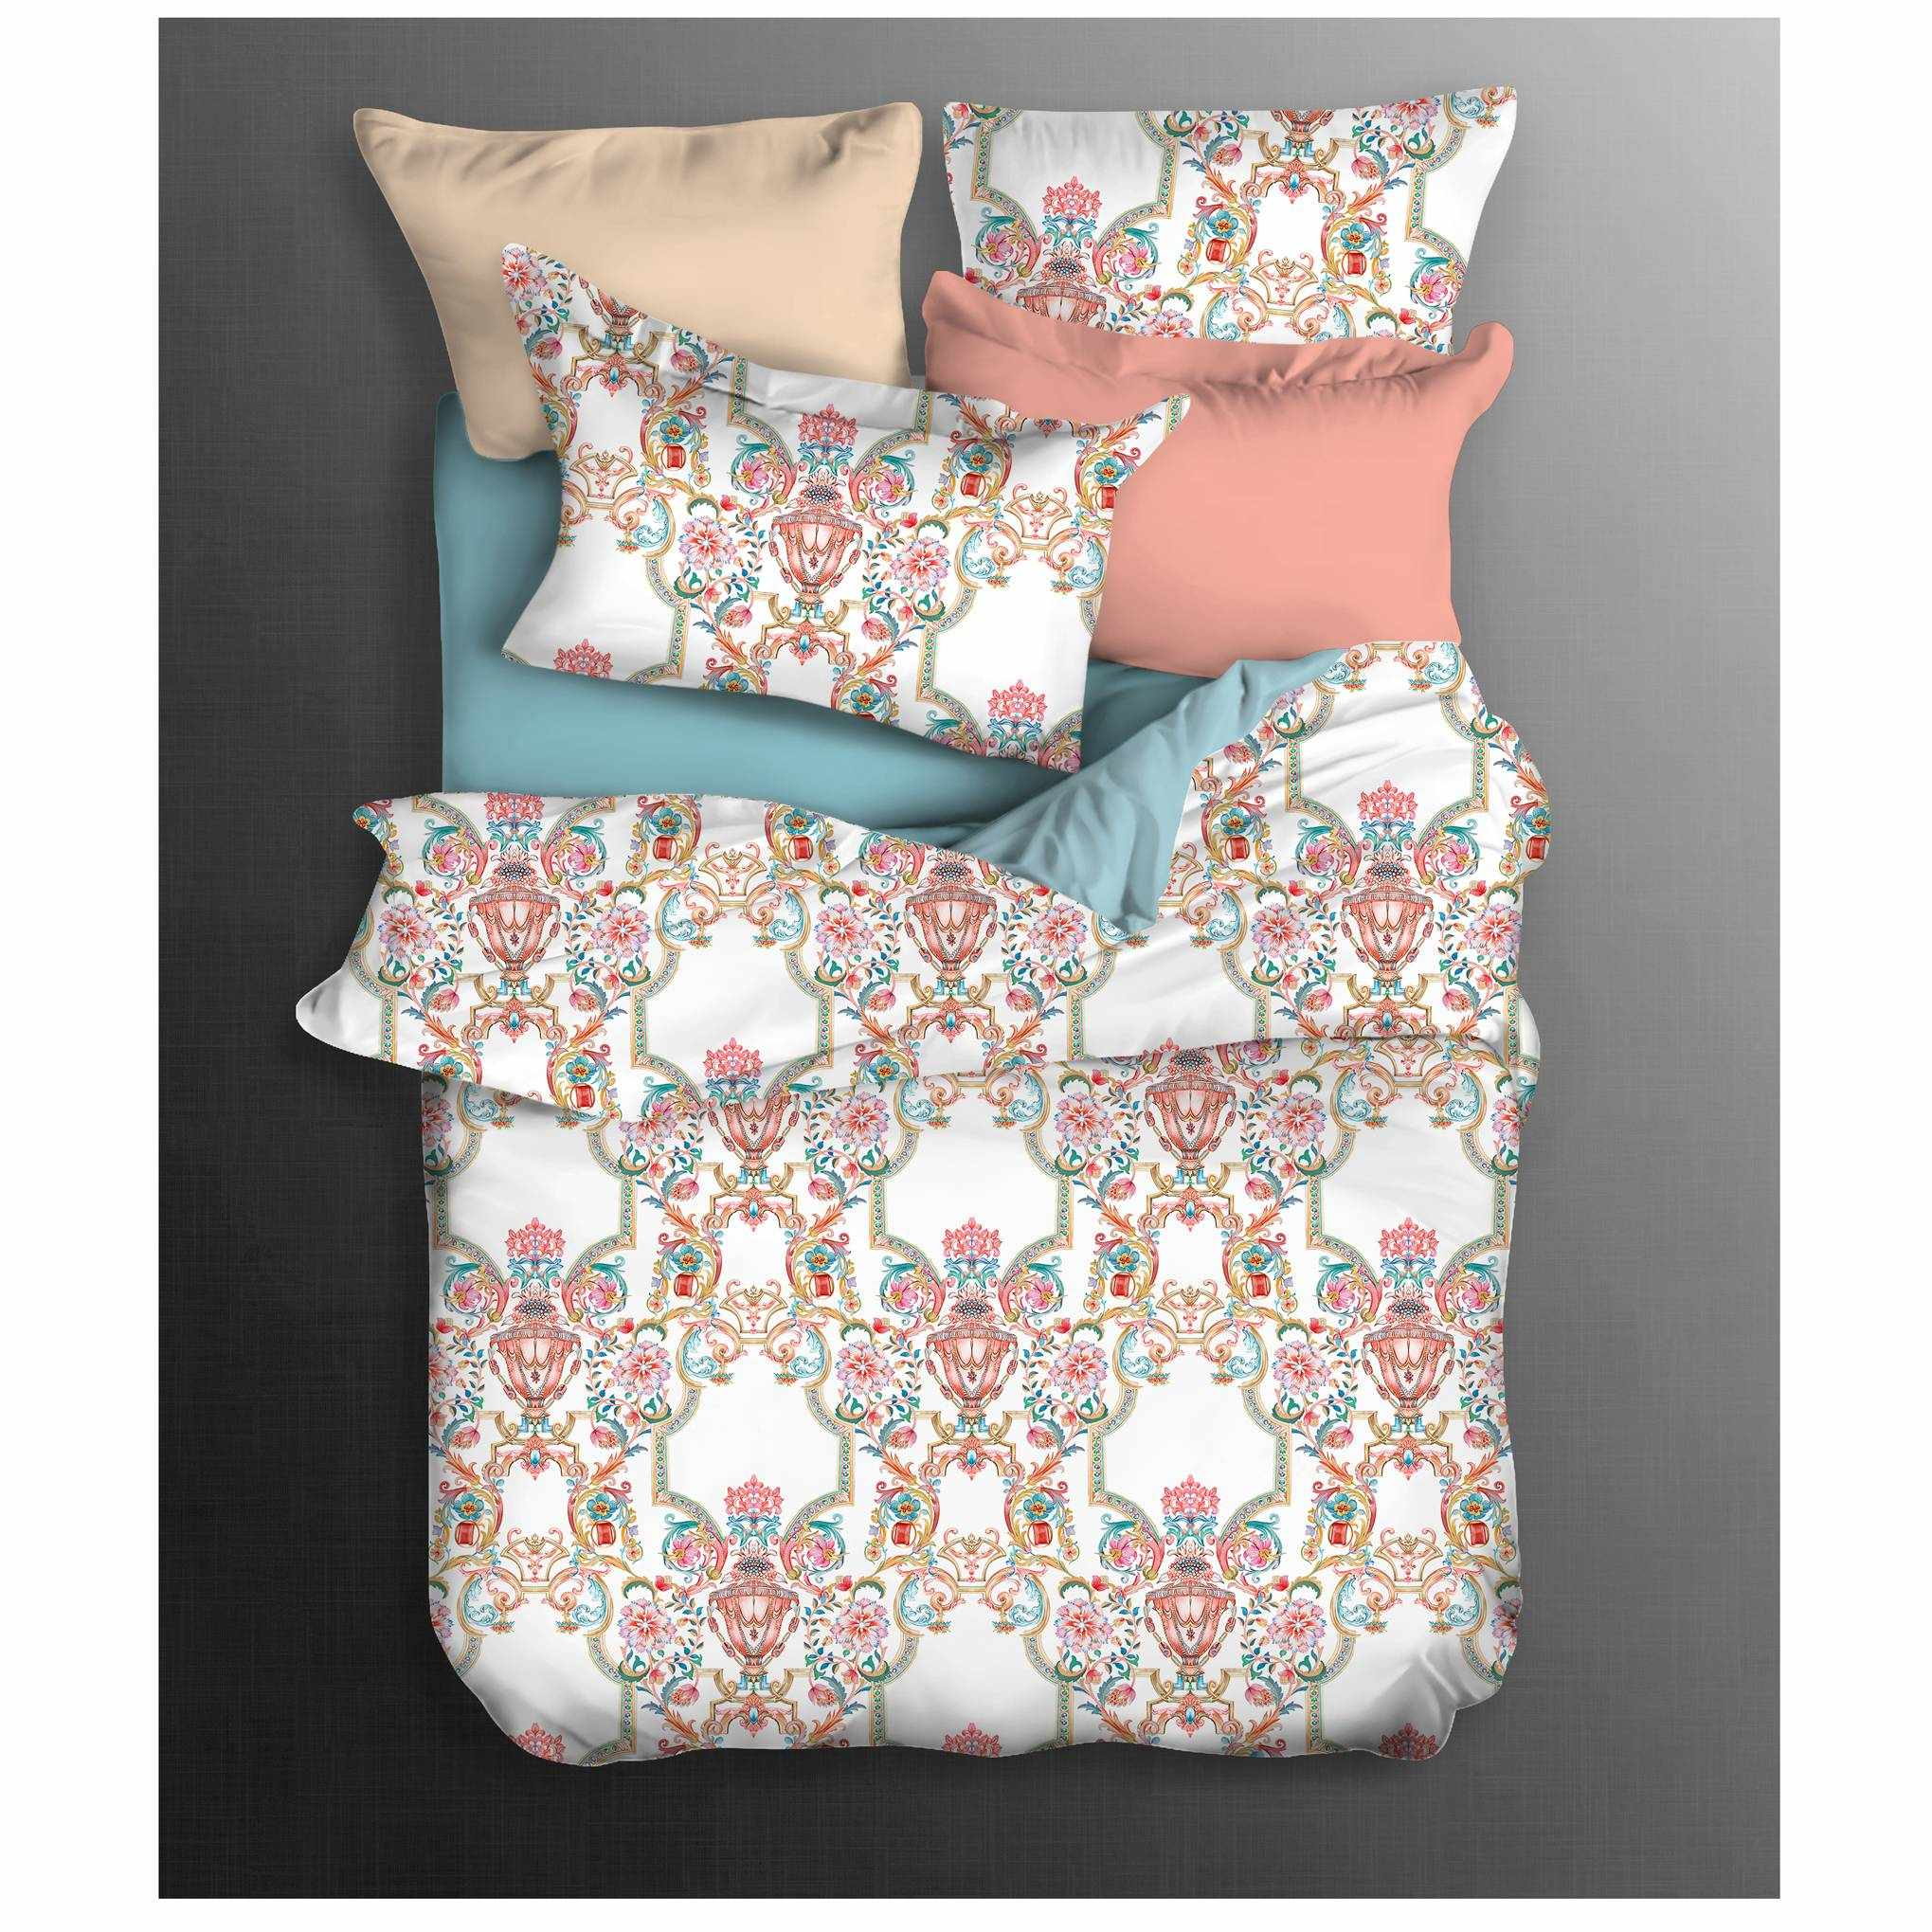 Sophisticated Design Bedding Product Made in China